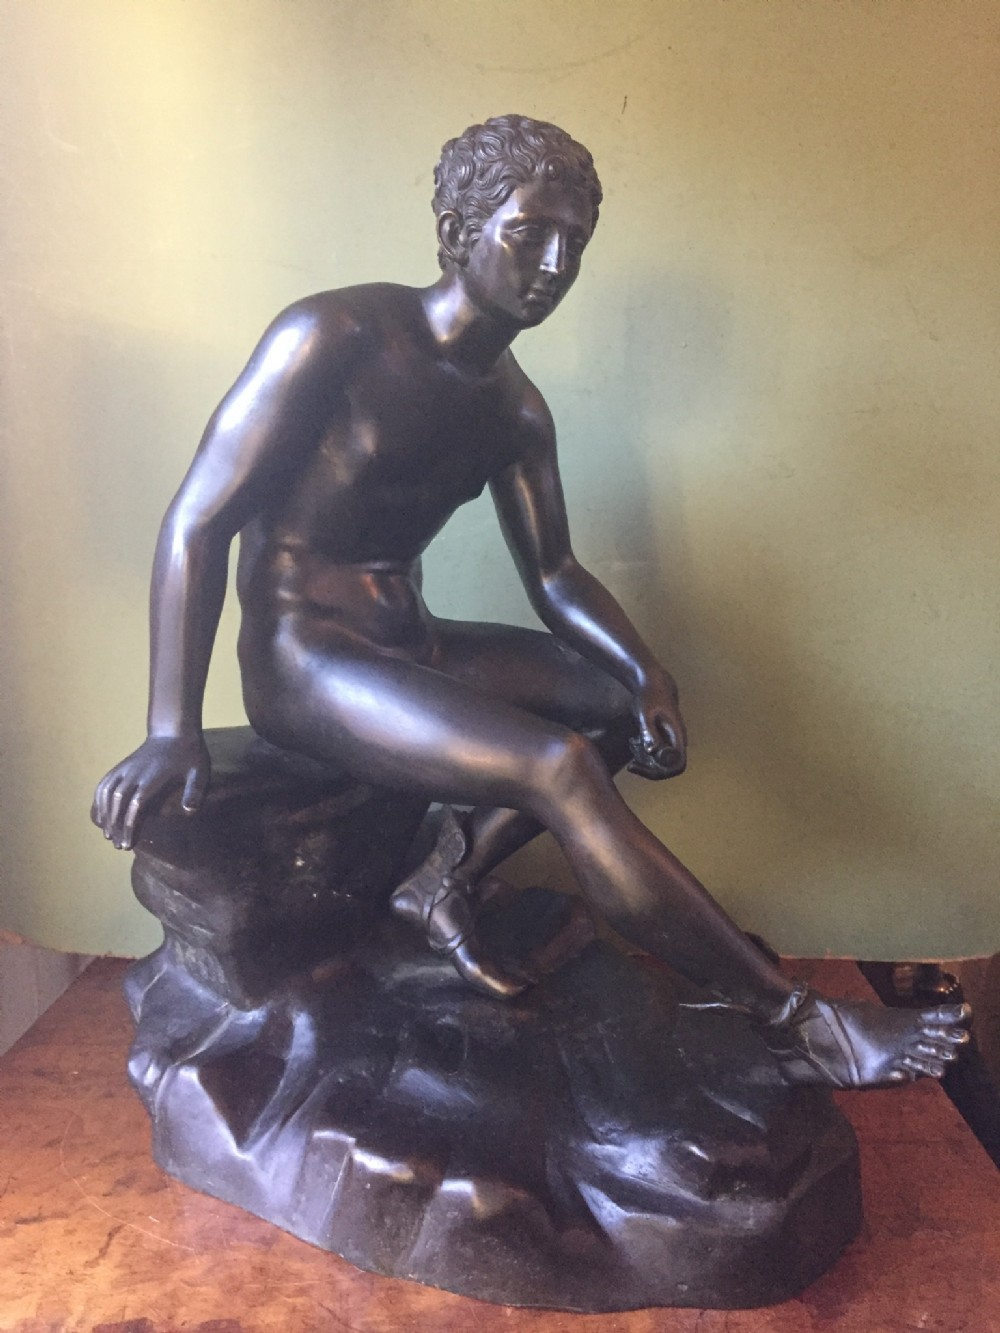 late c19th italian 'grand tour' souvenir bronze reduction after the antique by sommer foundry naples